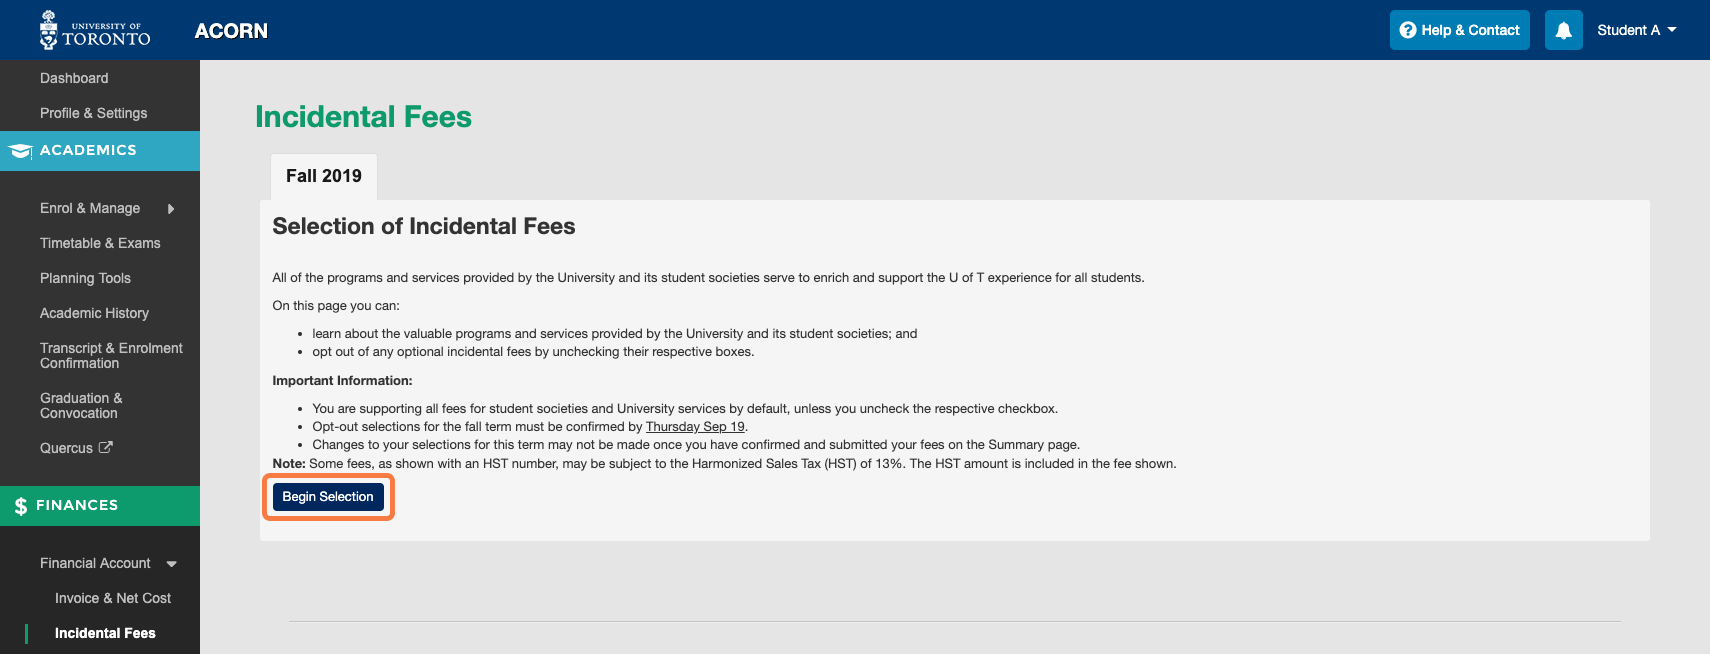 Incidental Fees screen before selections have begun